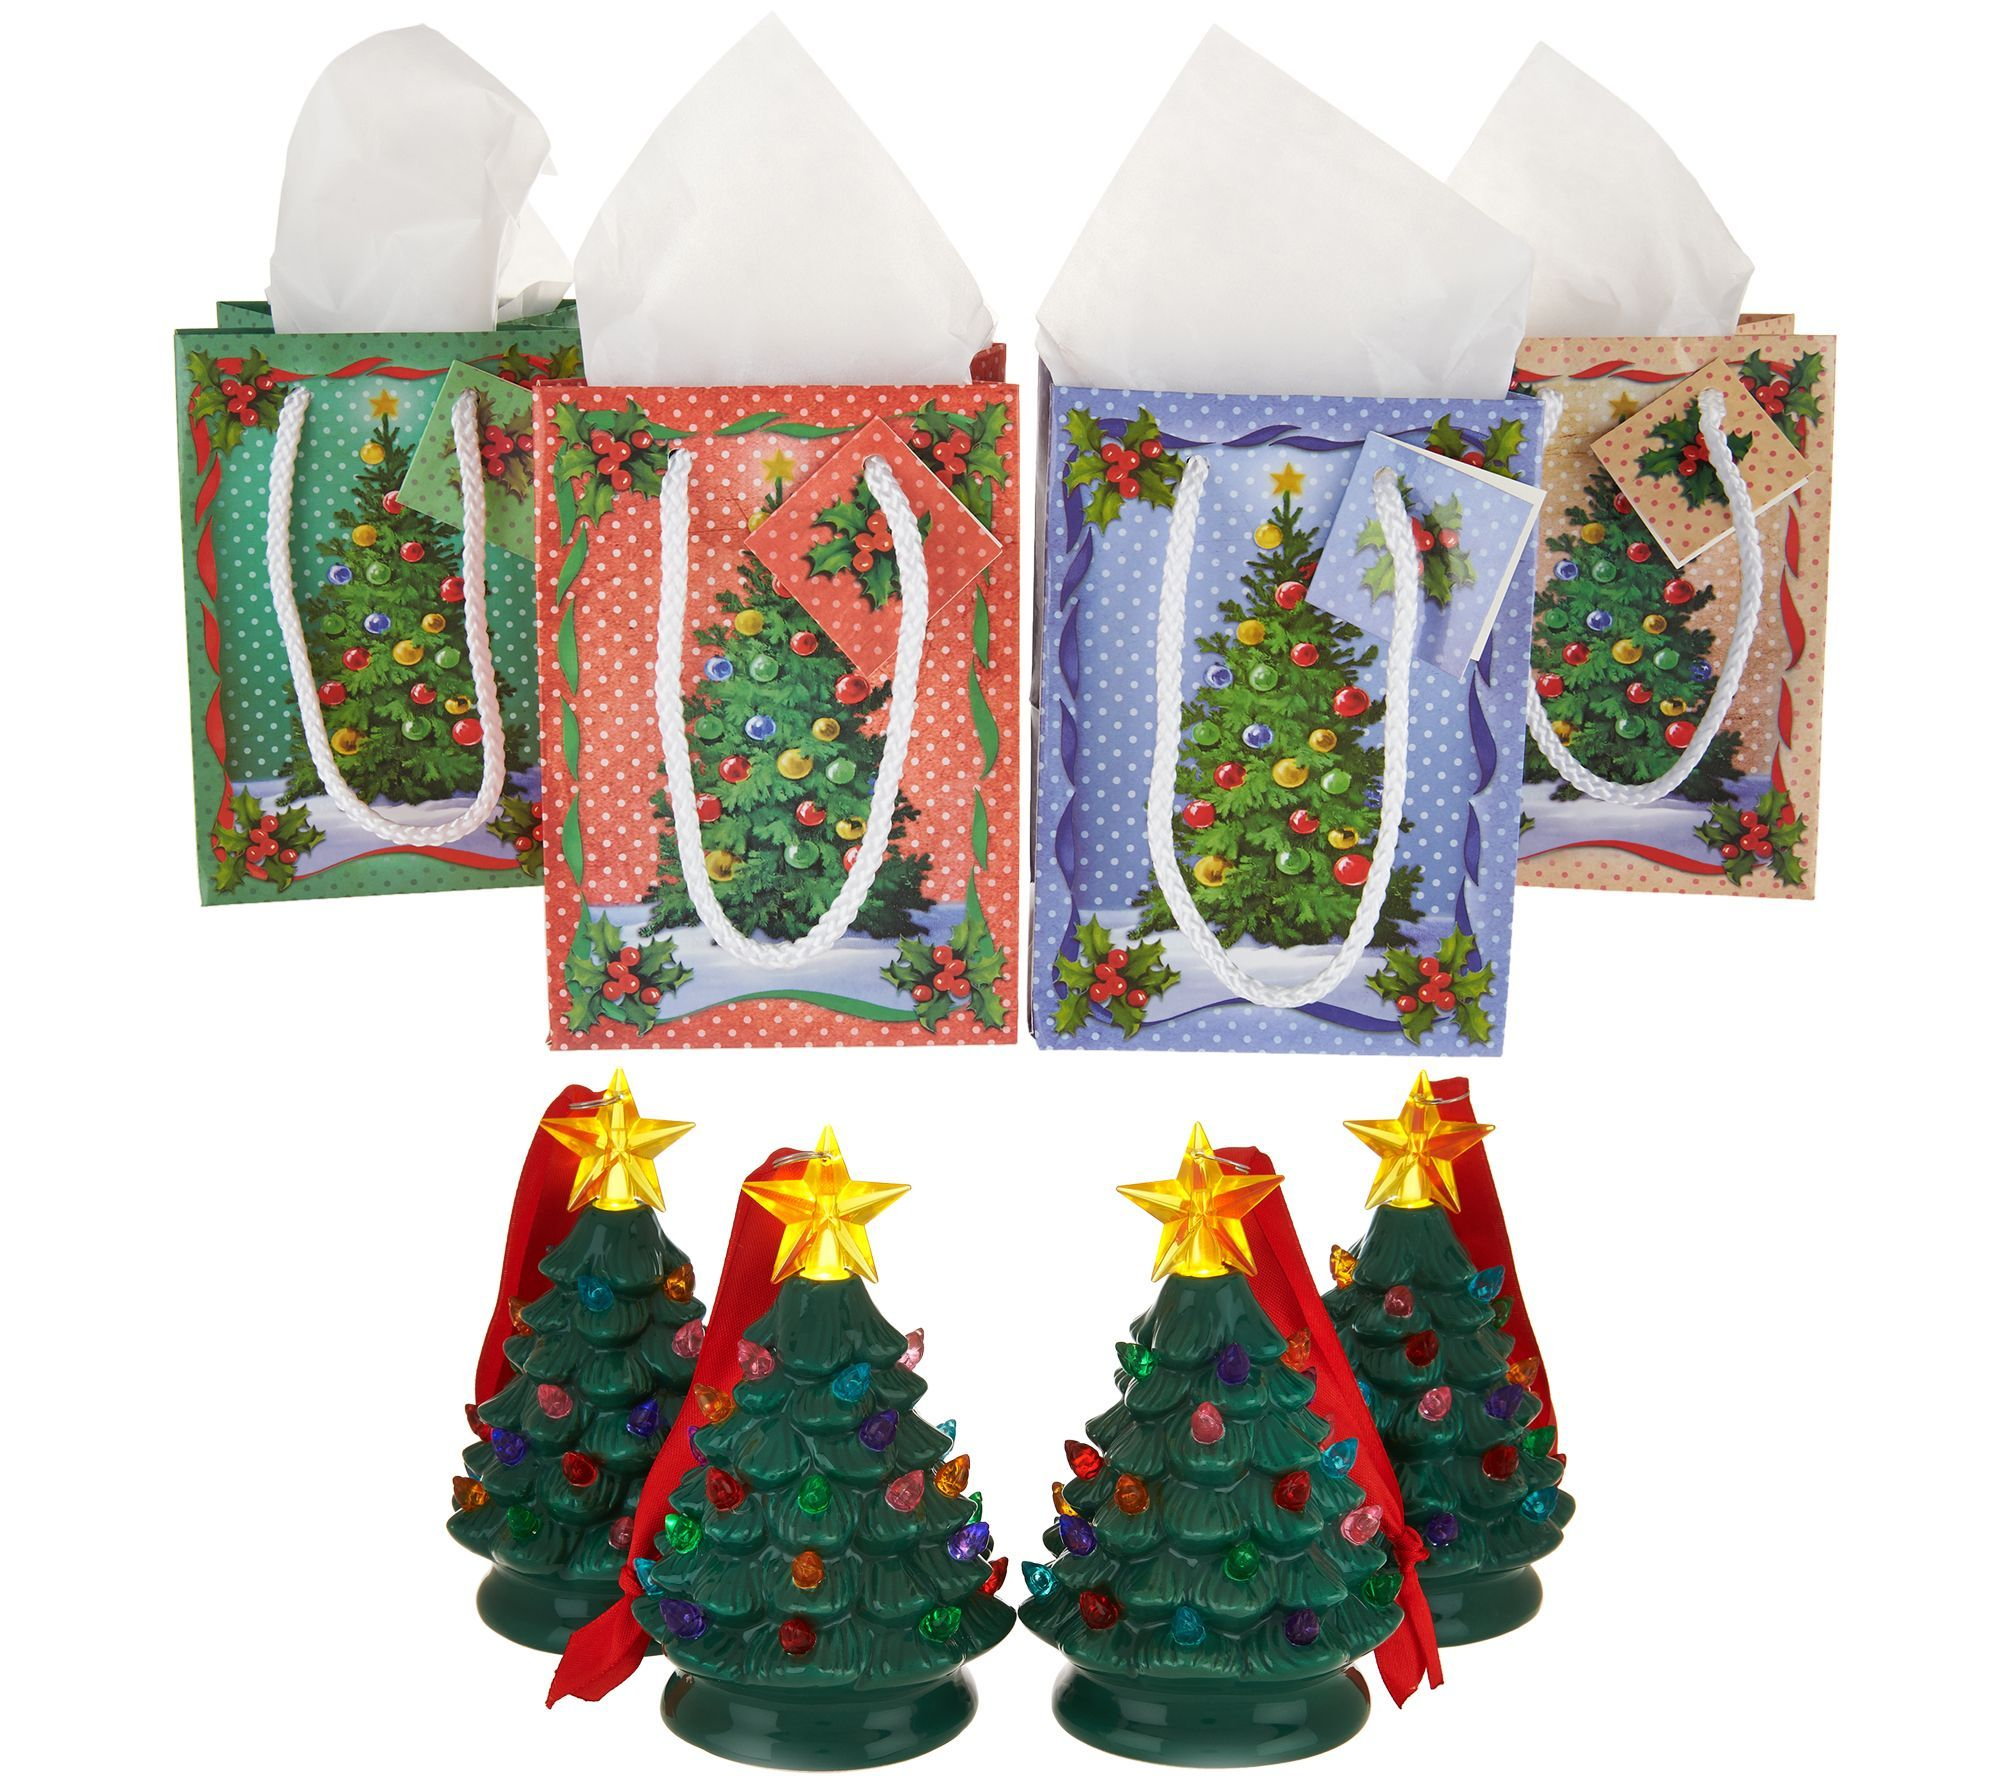 Mr Christmas Set Of 4 Mini Nostalgic Tree Ornaments With Gift Bags Qvc Com Christmas Settings Simple Holiday Gifts Gift Bags